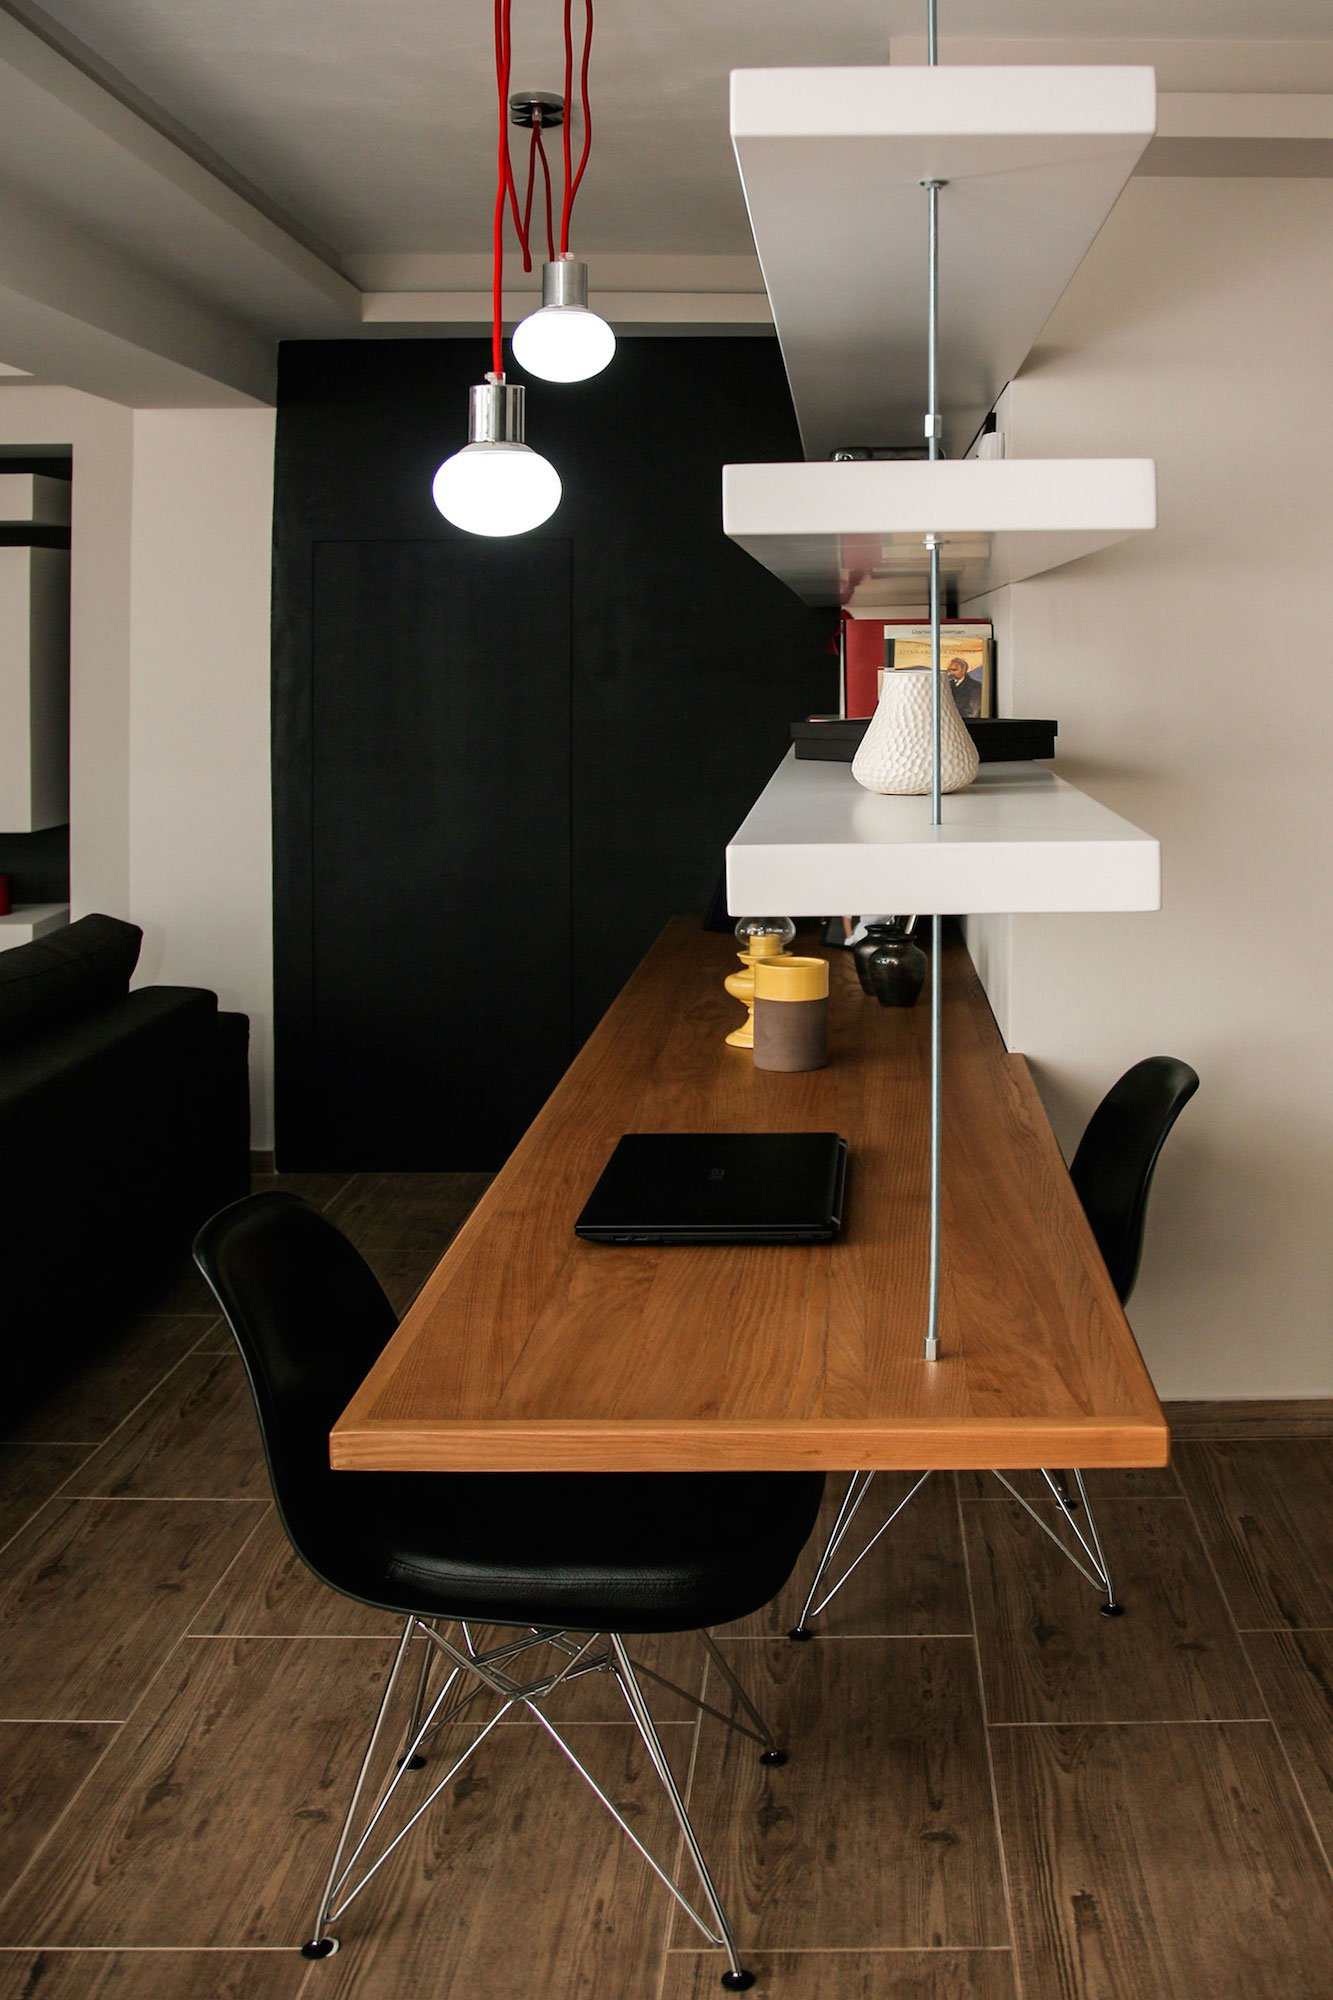 A-Stylish-Apartment-in-Heraklion-04